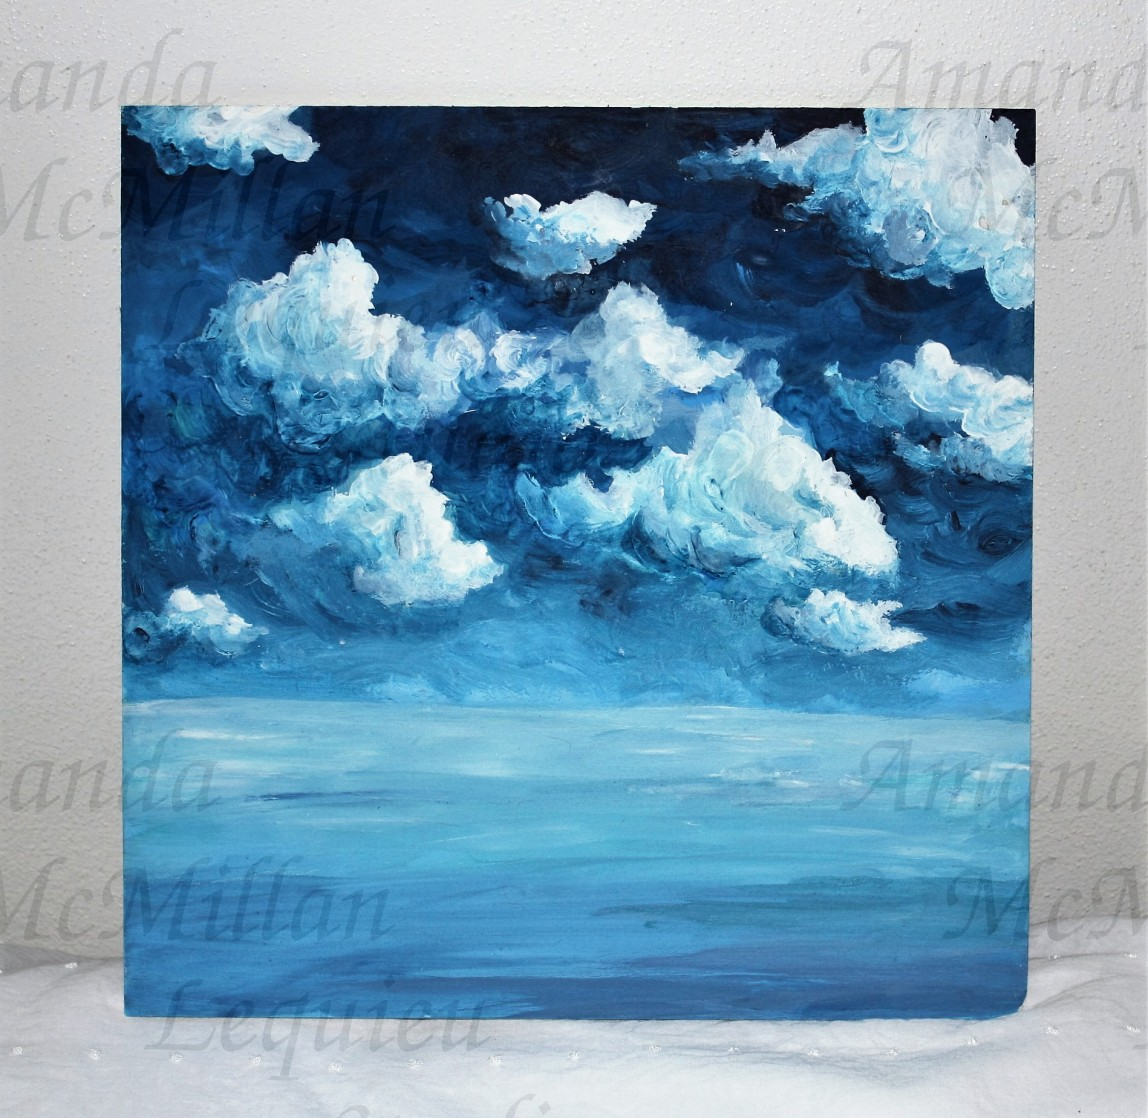 "Cloud by cloud, acrylic on canvas board, 12X12""; SOLD"